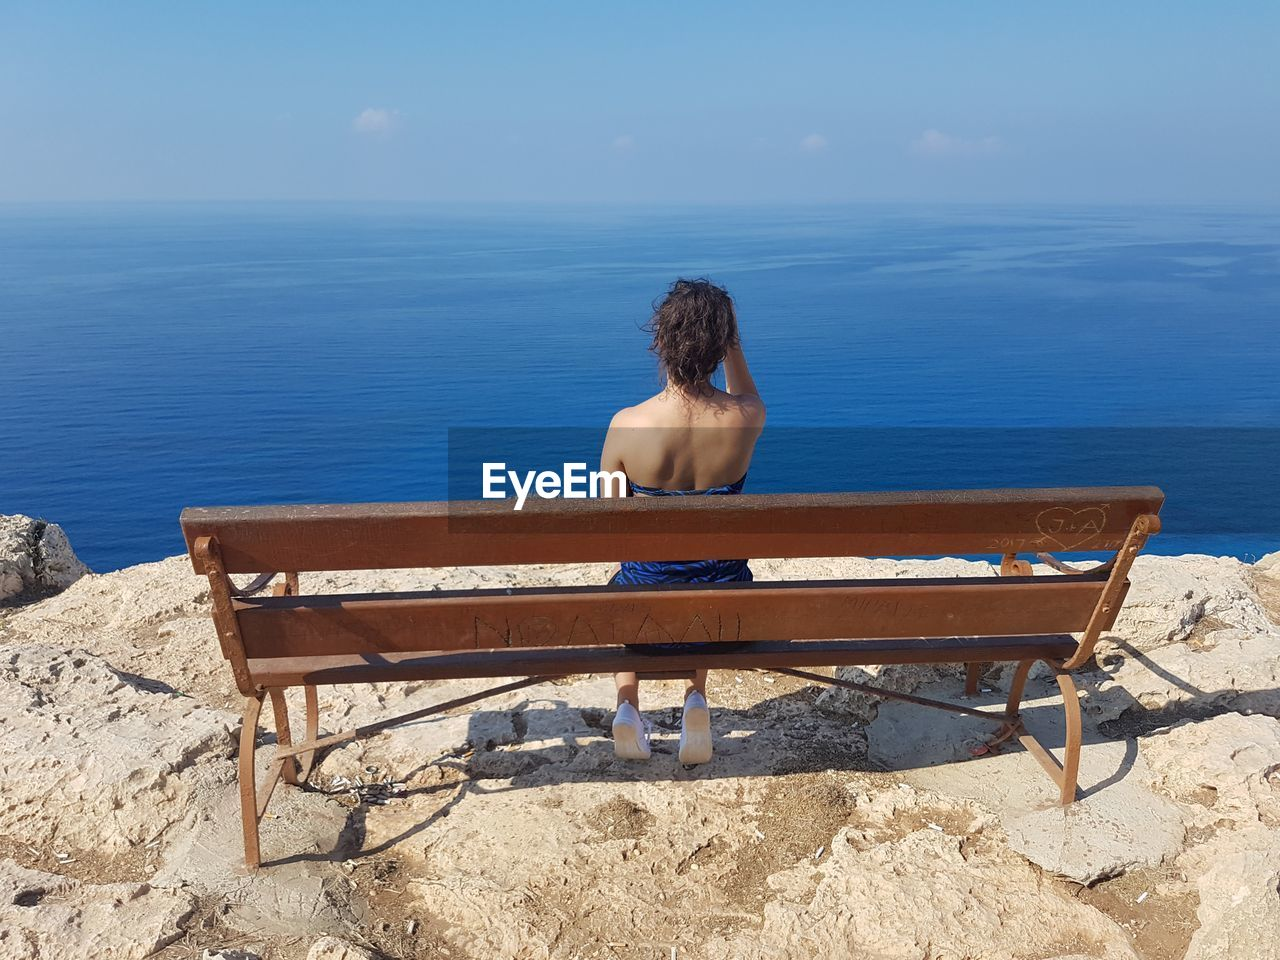 water, one person, rear view, sea, nature, sitting, land, real people, shirtless, relaxation, leisure activity, horizon, beach, horizon over water, sky, scenics - nature, tranquility, lifestyles, bench, outdoors, looking at view